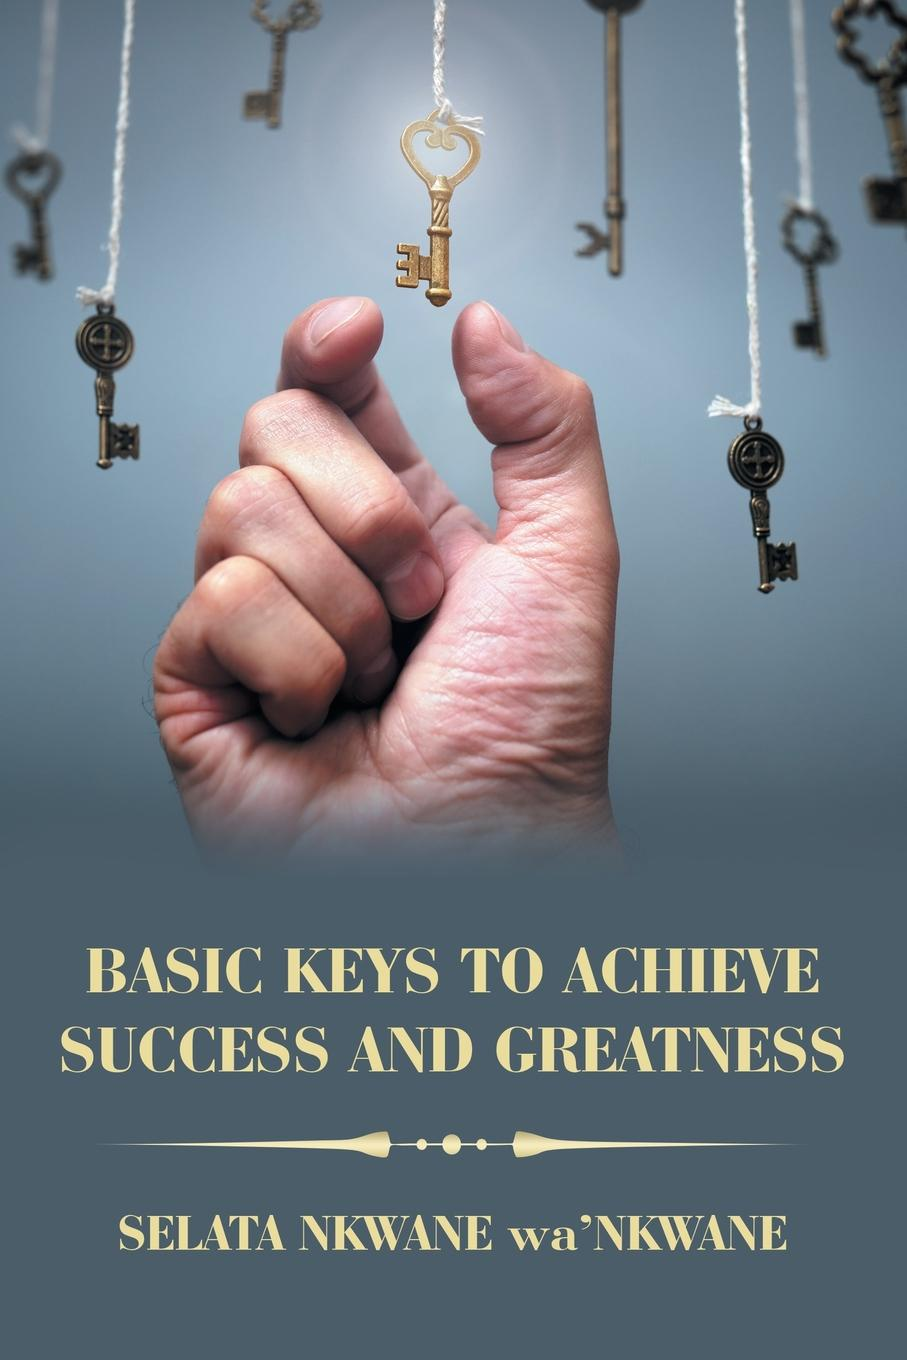 купить Selata Nkwane wa'Nkwane Basic Keys to Achieve Success and Greatness по цене 1789 рублей